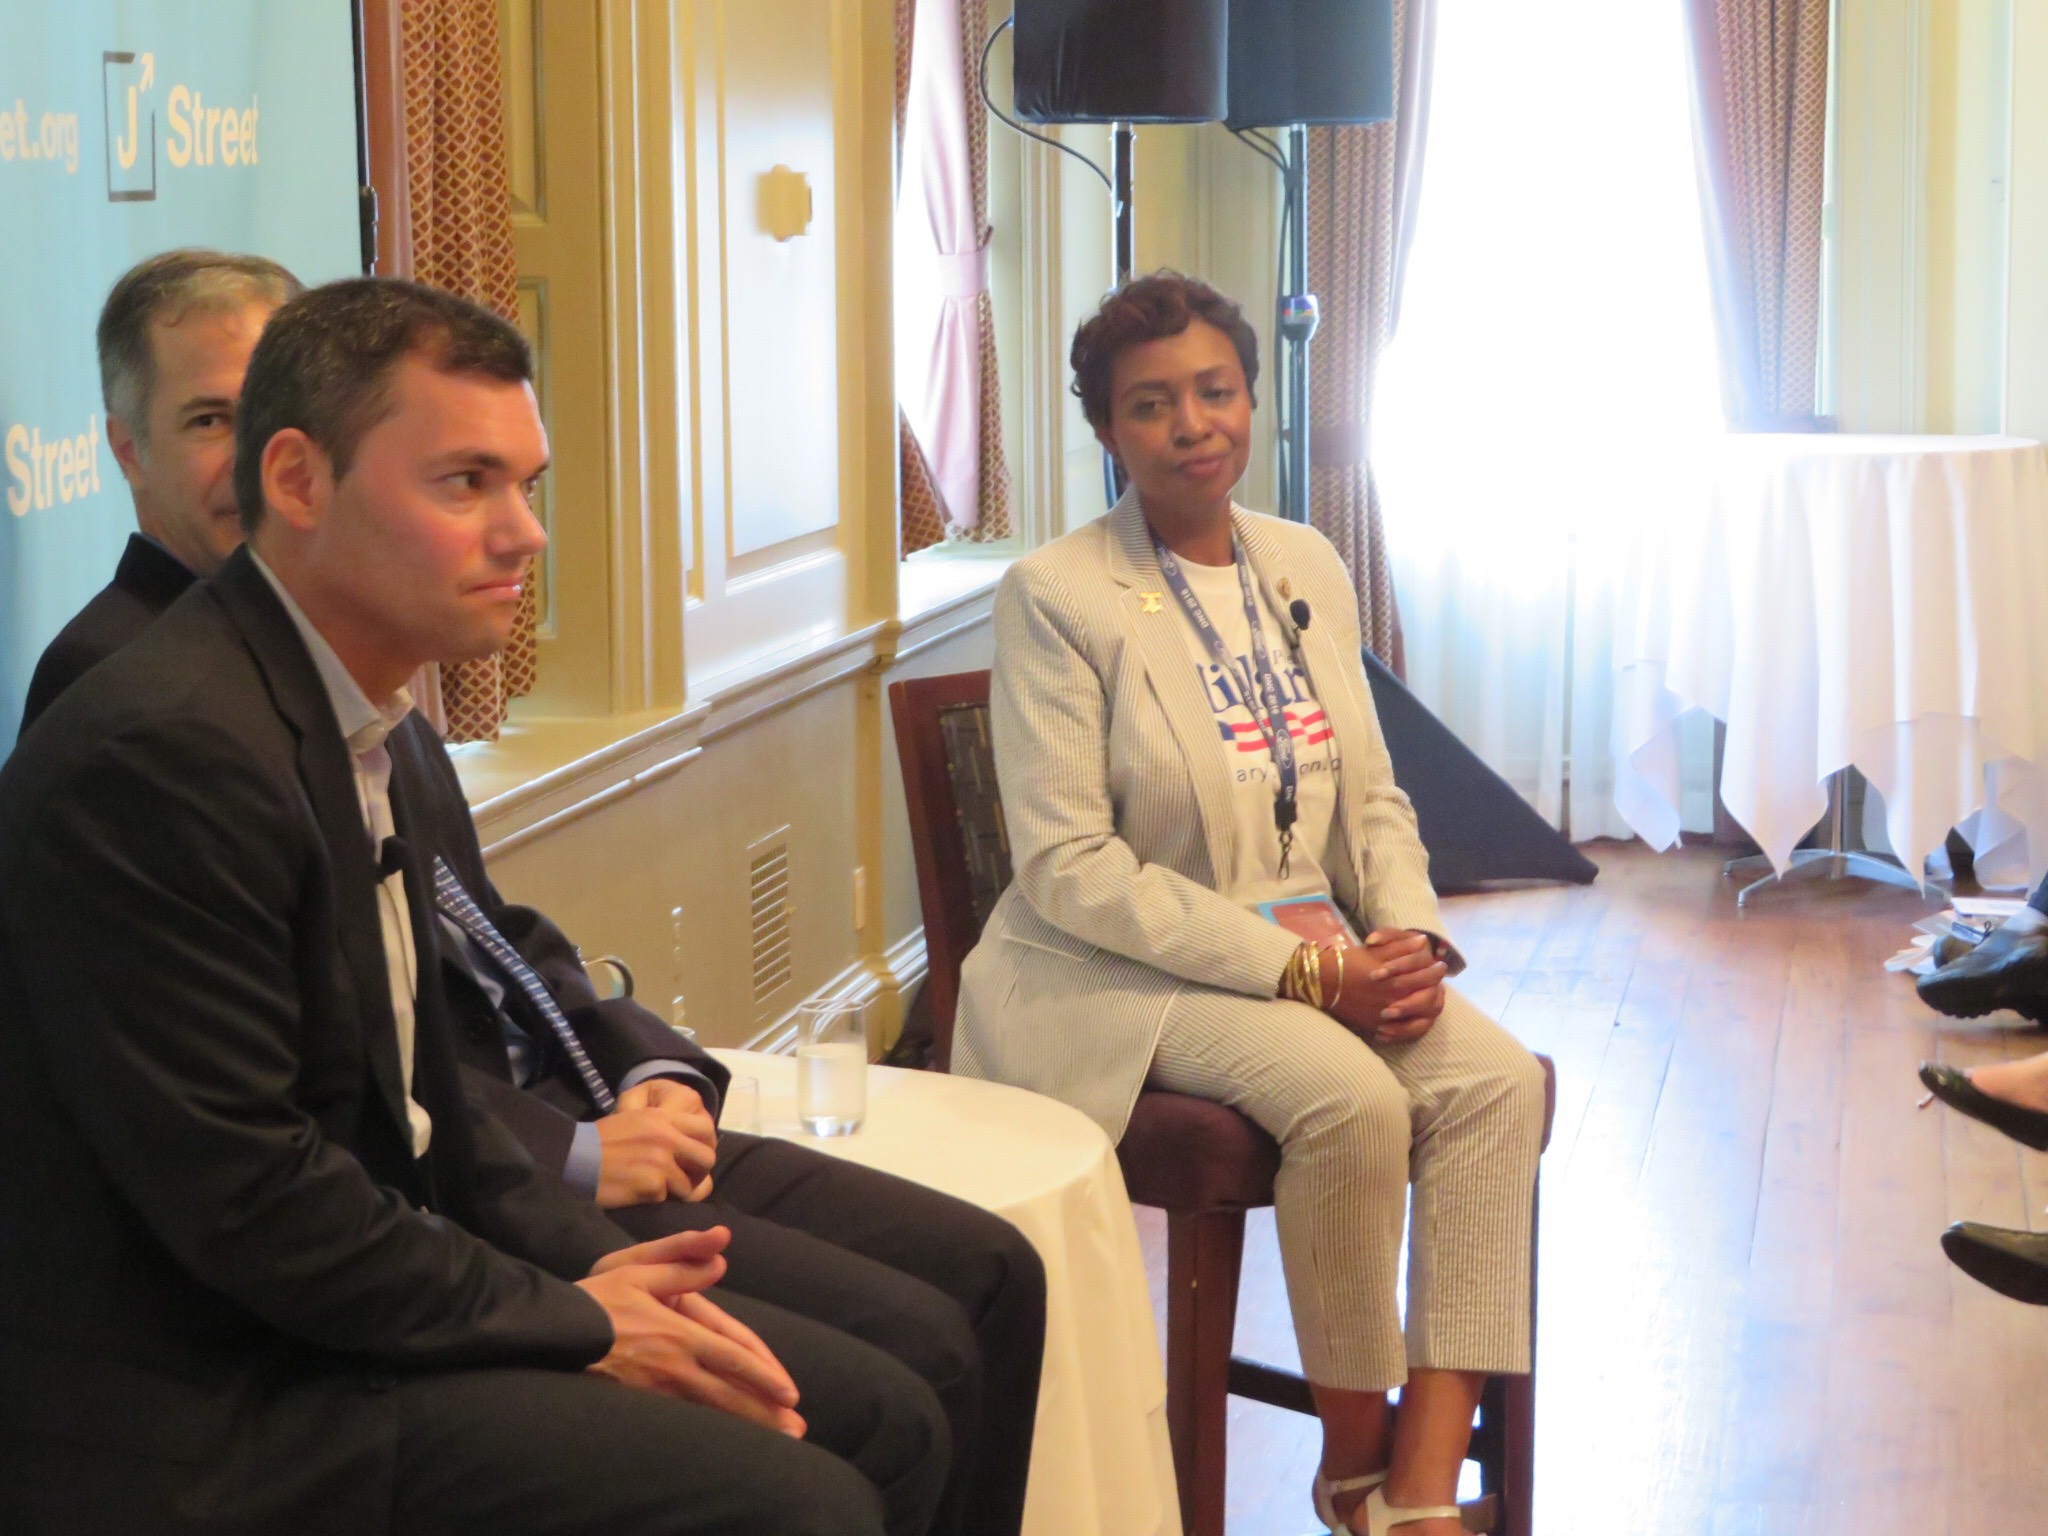 Rep. Yvette Clarke, D-N.Y., speaks Tuesday July 26 at a J Street panel near the Democratic National Convention. At left is Peter Beinart.